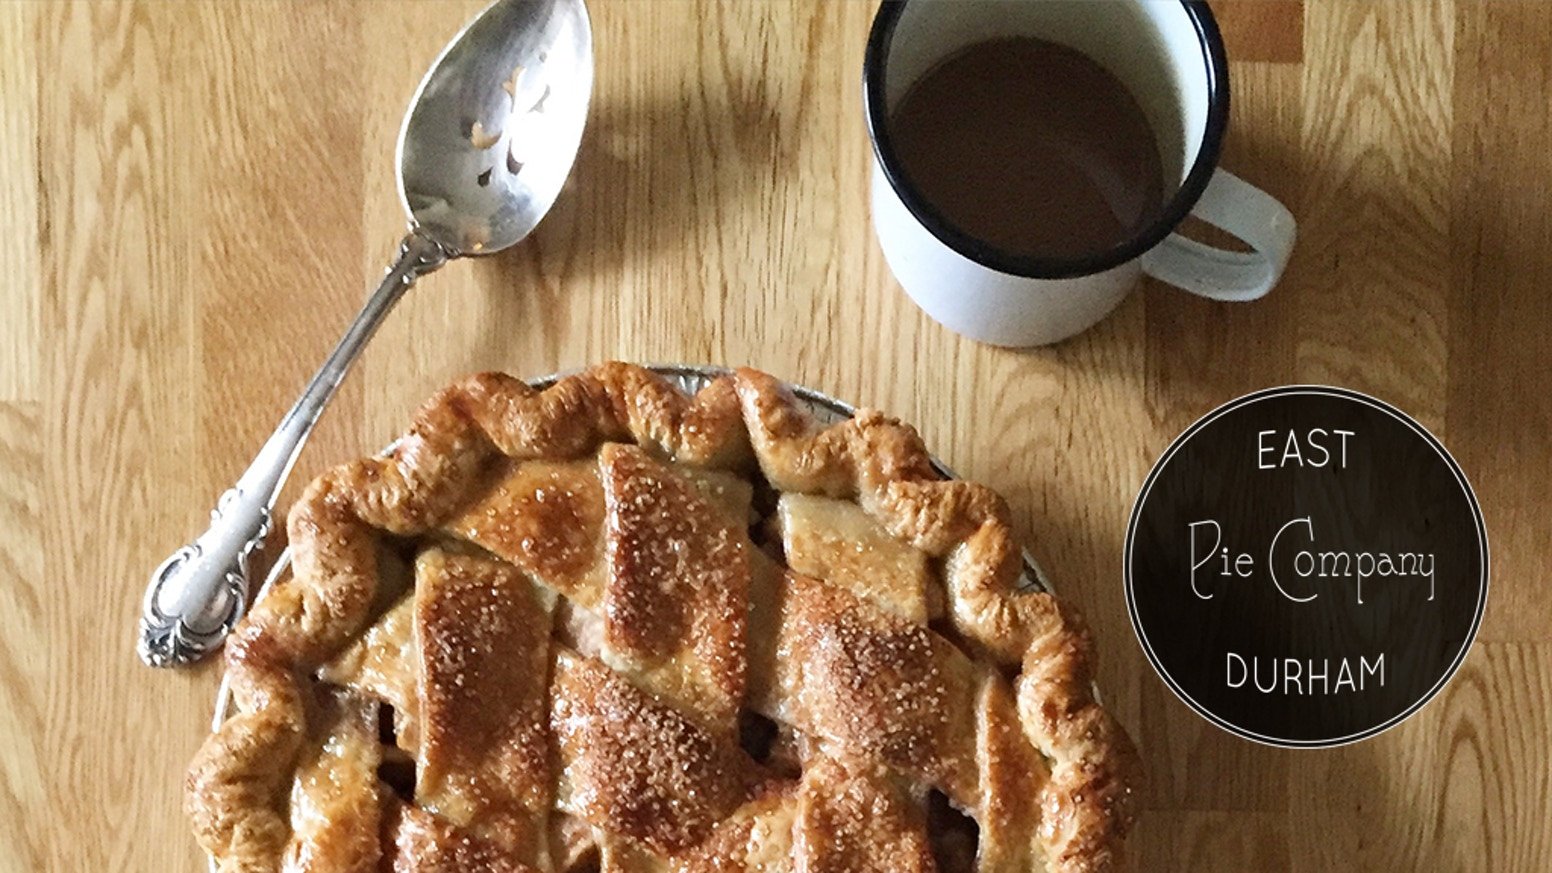 With your support we're opening a shop in Old East Durham in 2017! We're excited to bring coffee, pie and baked goods to our local community!